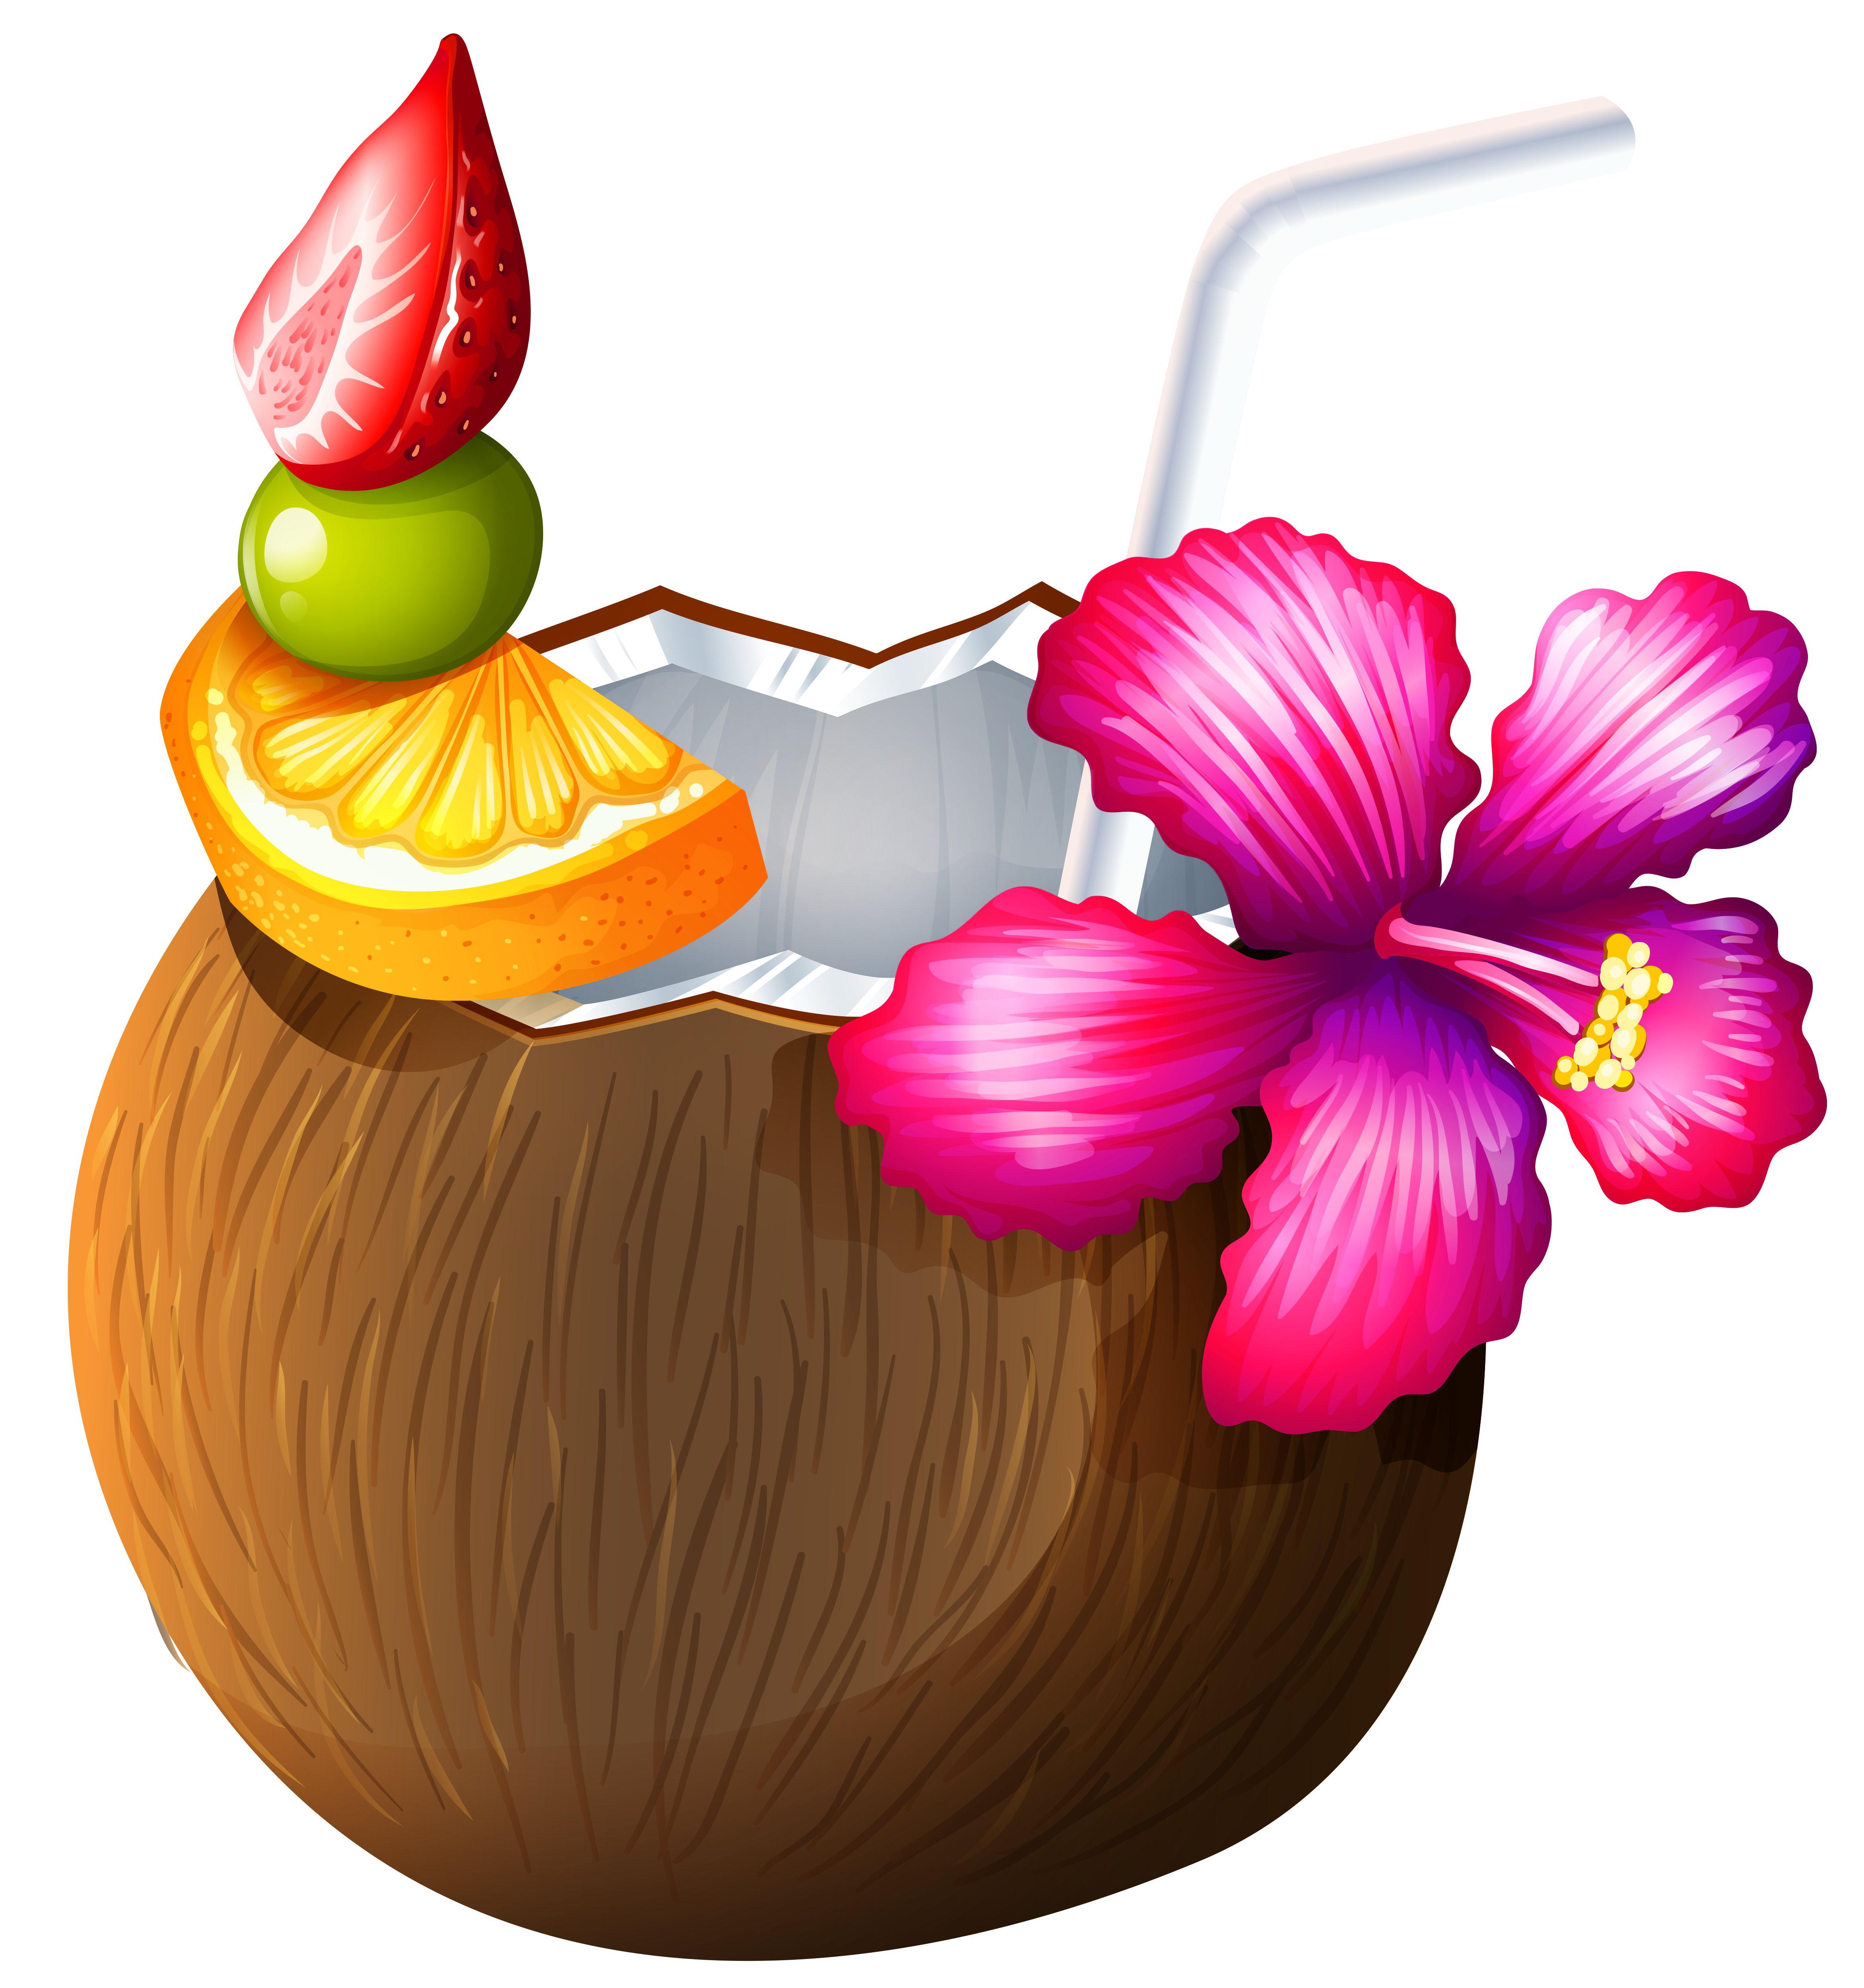 Exotic clipart View Coconut  Yopriceville Cocktail